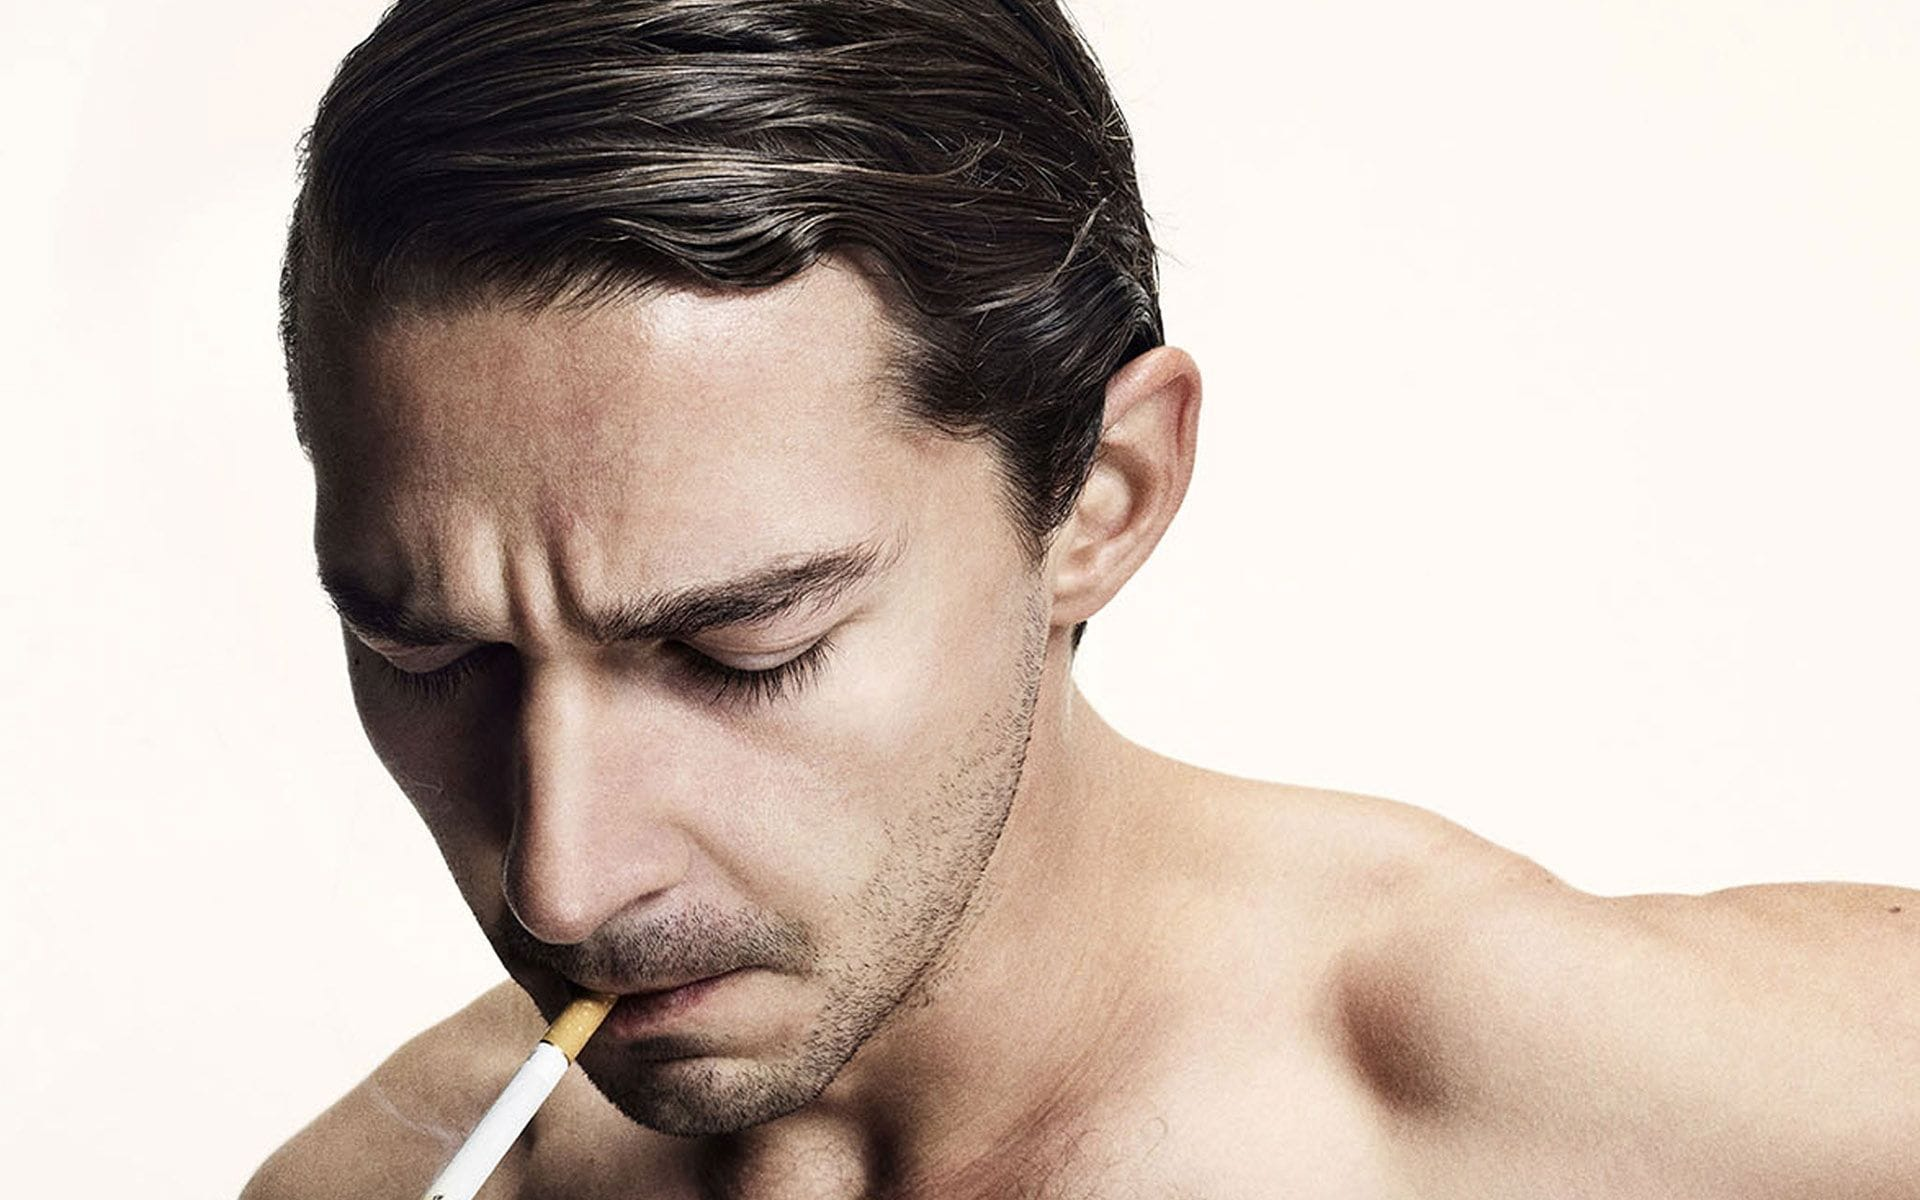 Shia Labeouf Full hd wallpapers